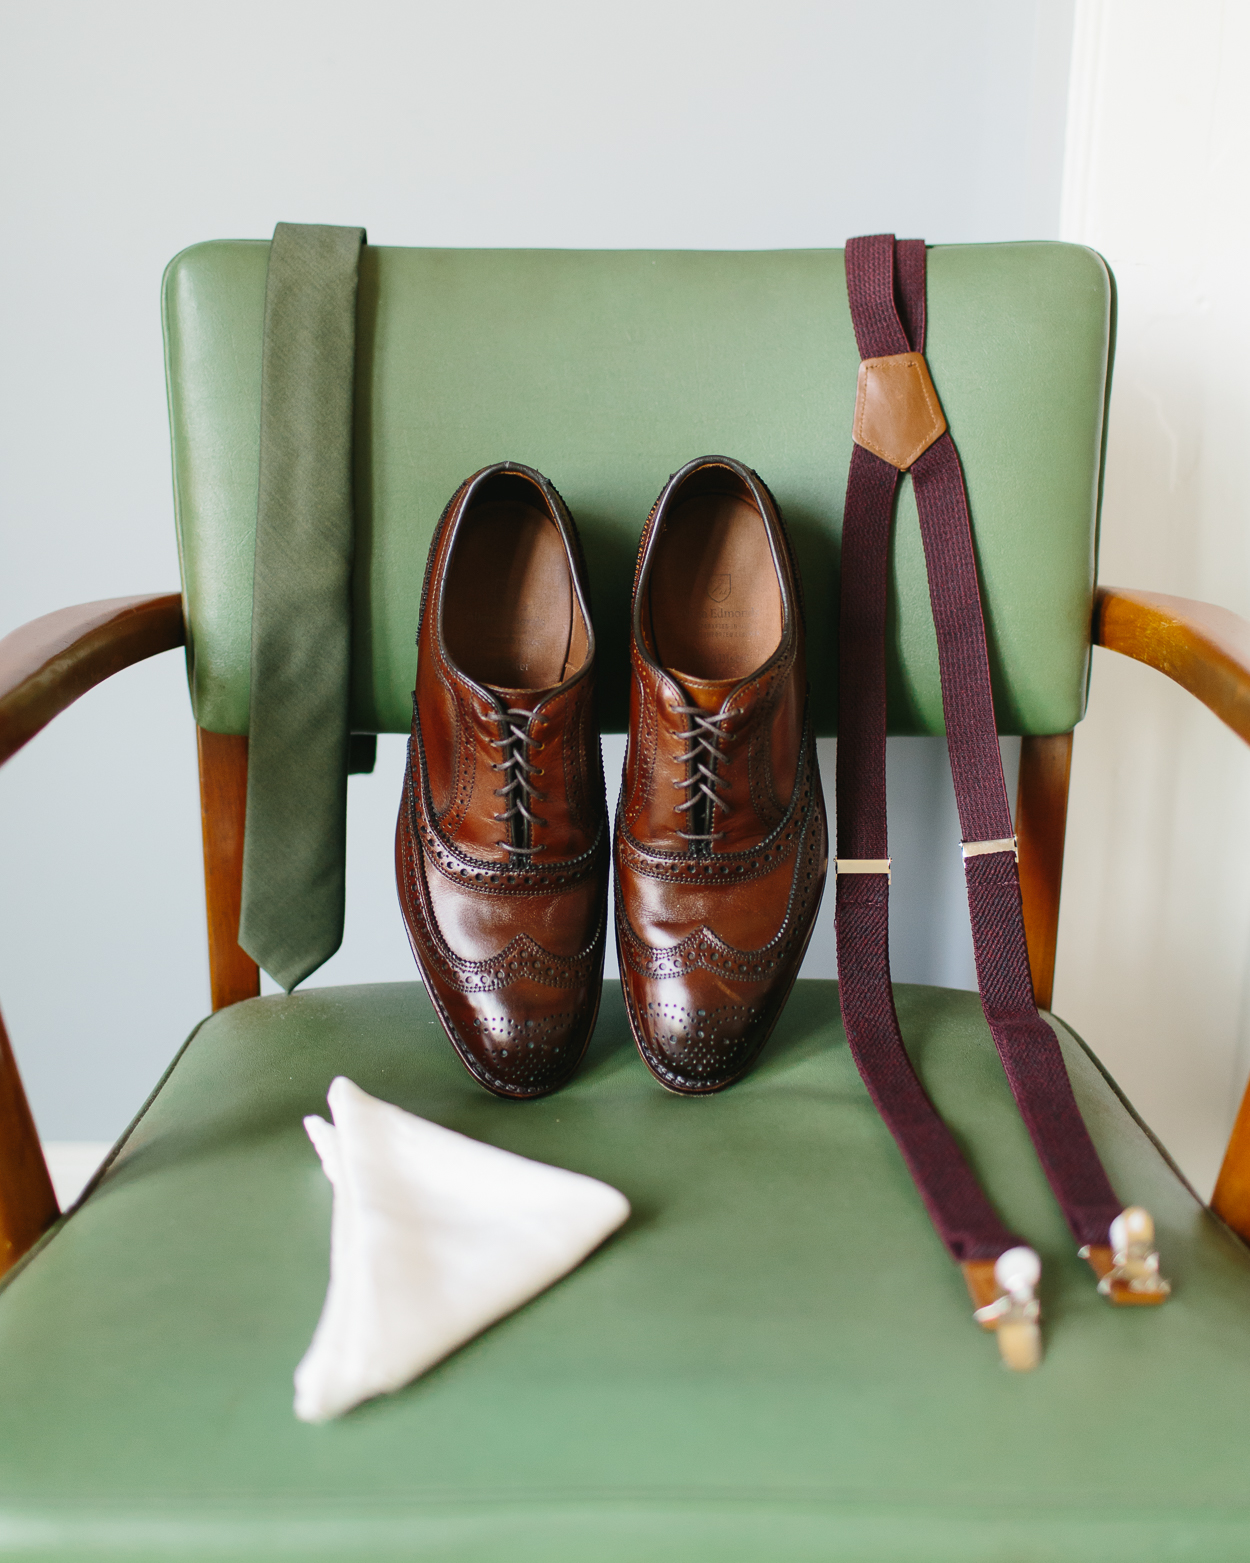 Detailed shot of groom's shoes